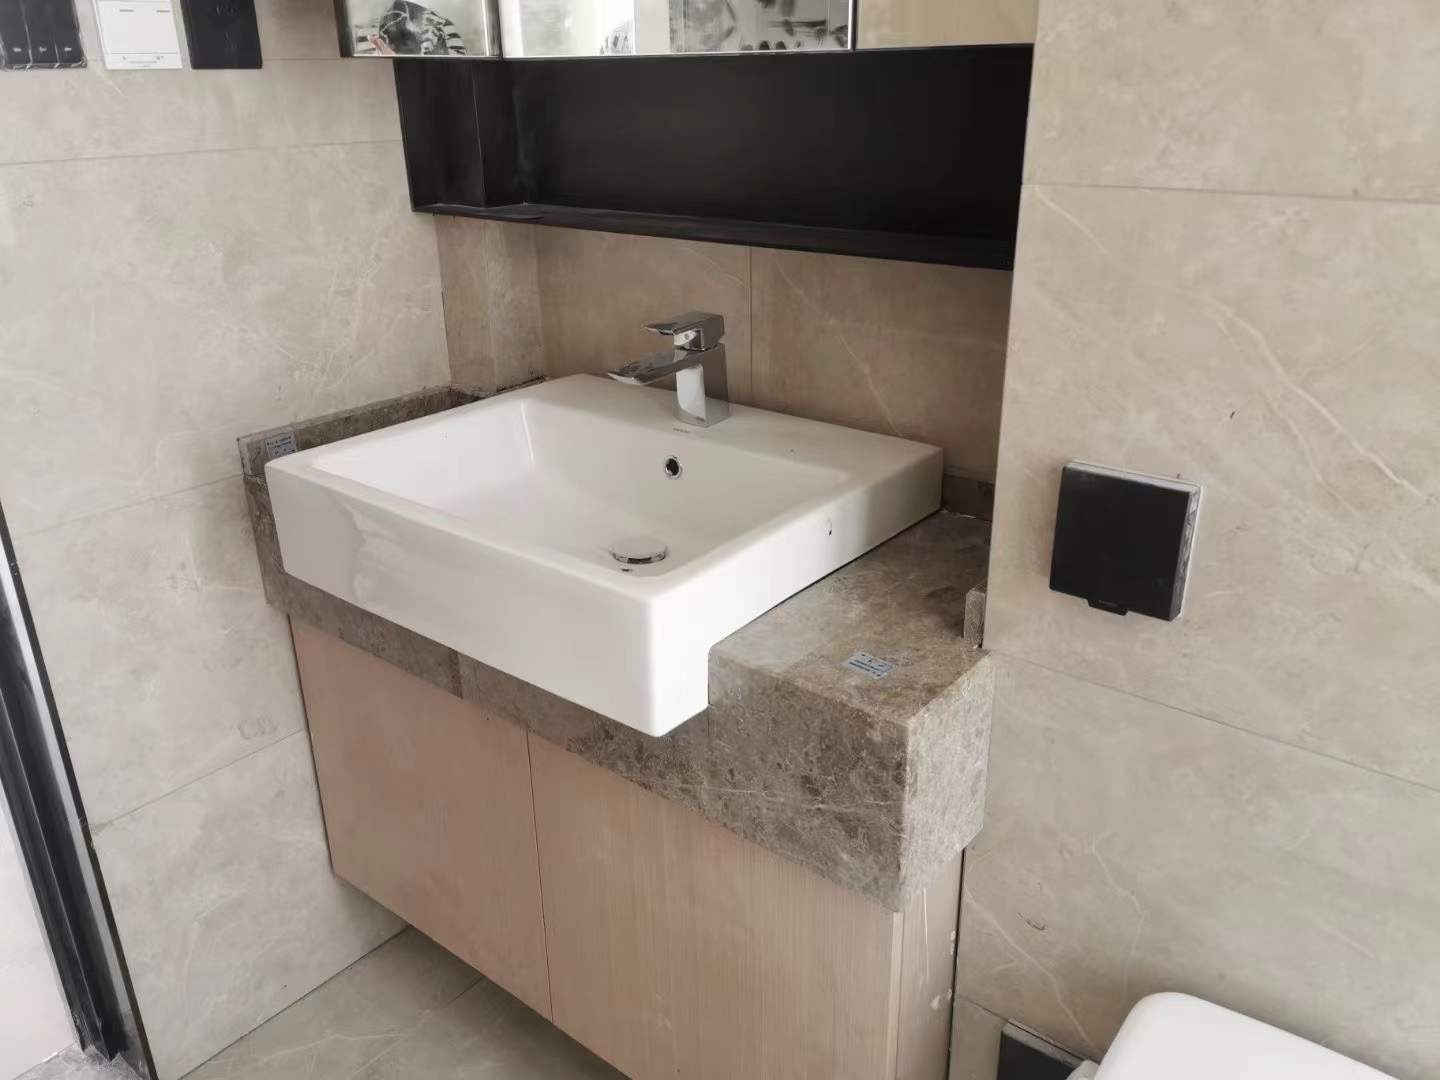 Marble Lavatory Countertop and Window Sill